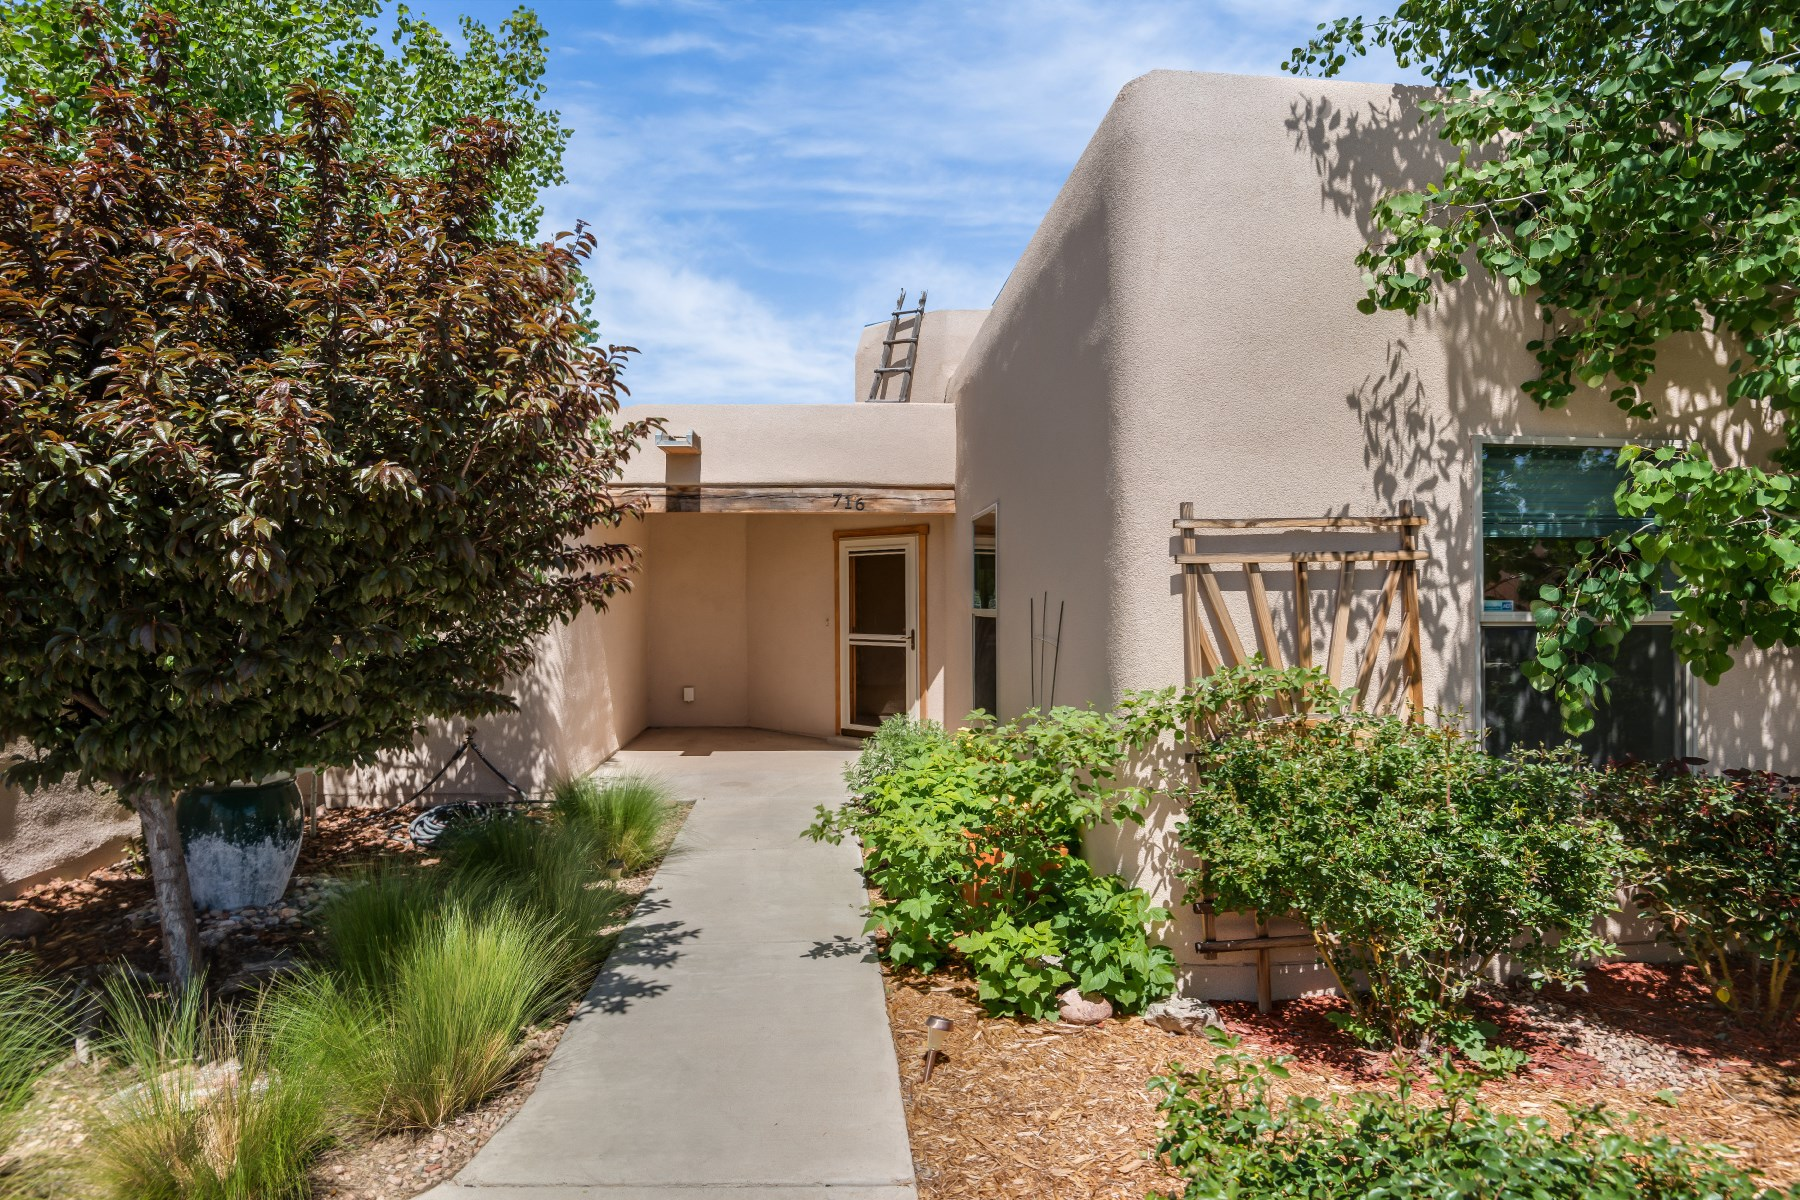 Single Family Home for Sale at 716 Calle Beatrice Santa Fe City Southwest, Santa Fe, New Mexico 87505 United States